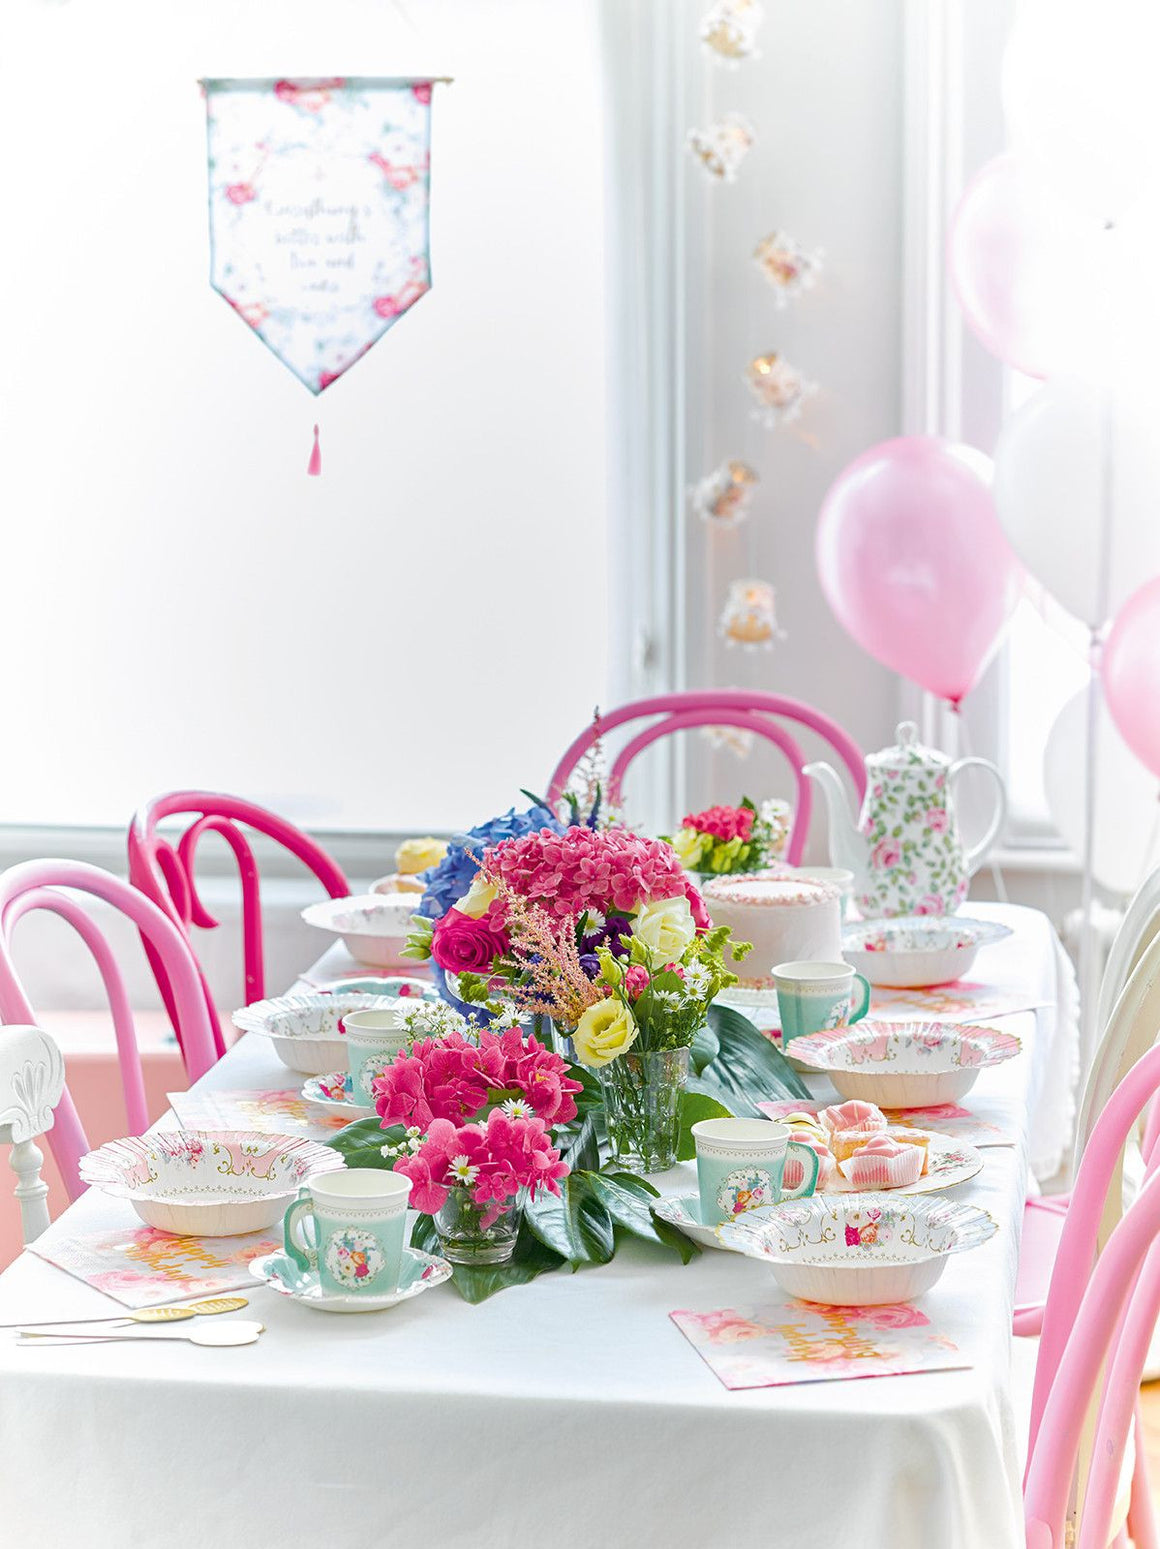 CUPS - TRULY SCRUMPTIOUS TEACUP + SAUCER TALKING TABLES, CUPS, TALKING TABLES - Bon + Co. Party Studio